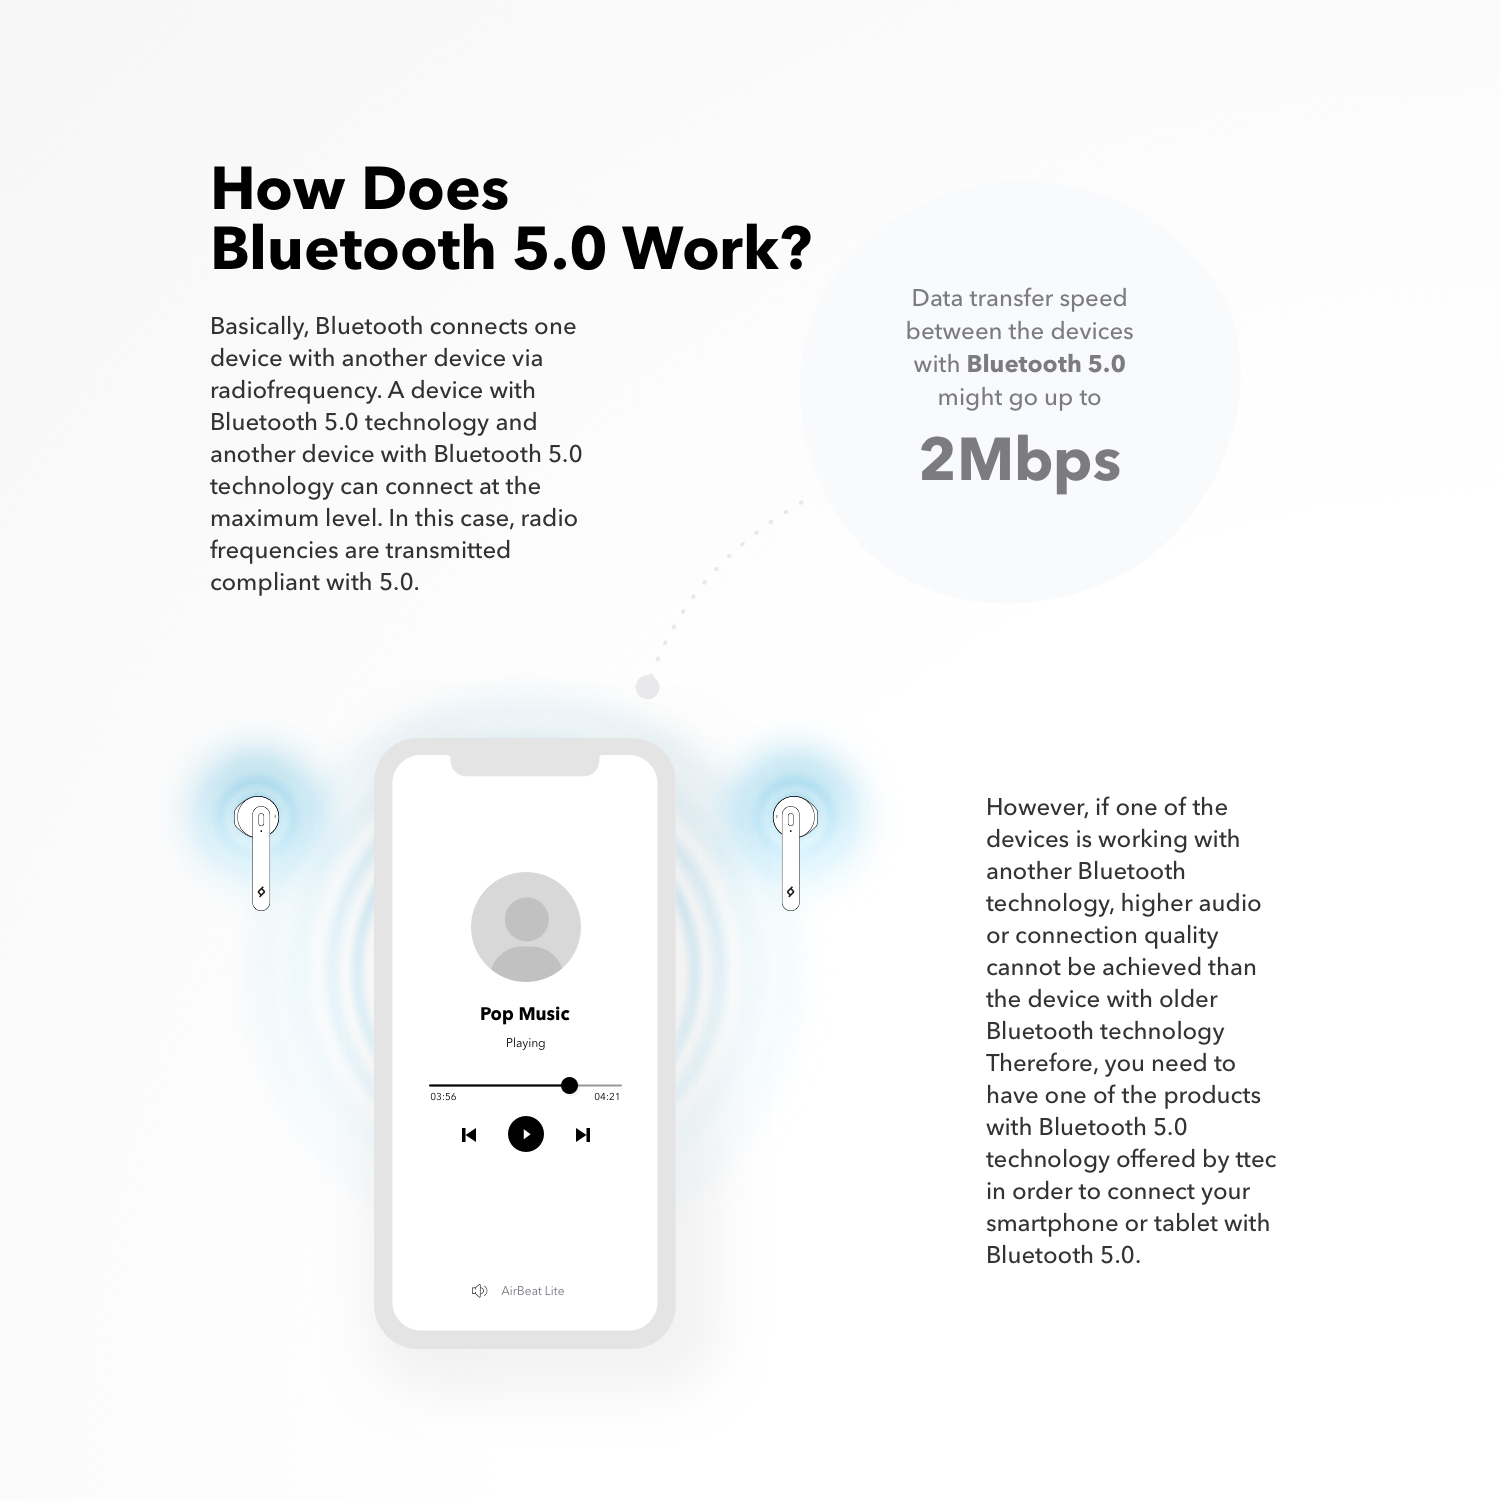 How does Bluetooth 5.0 Work ?